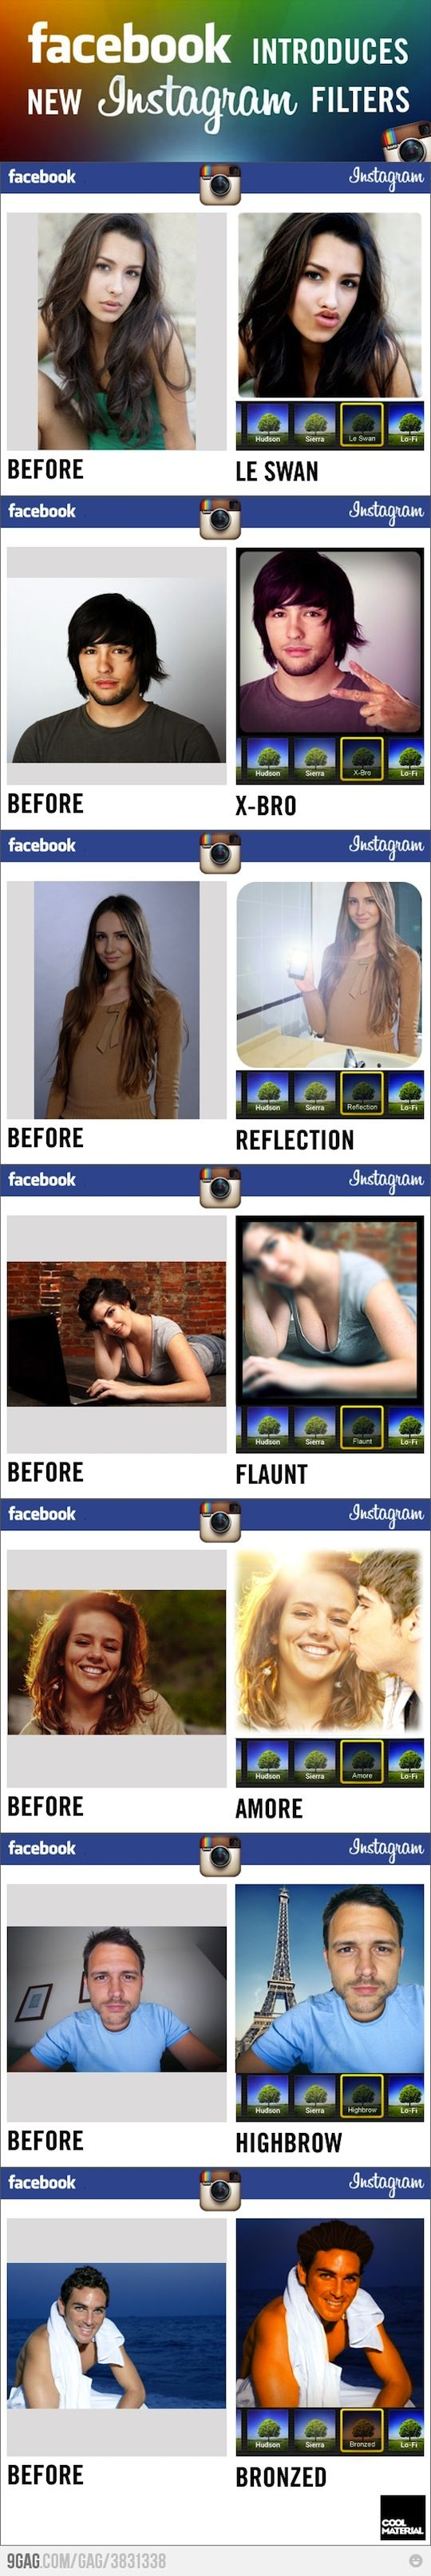 New instagram filters by Facebook